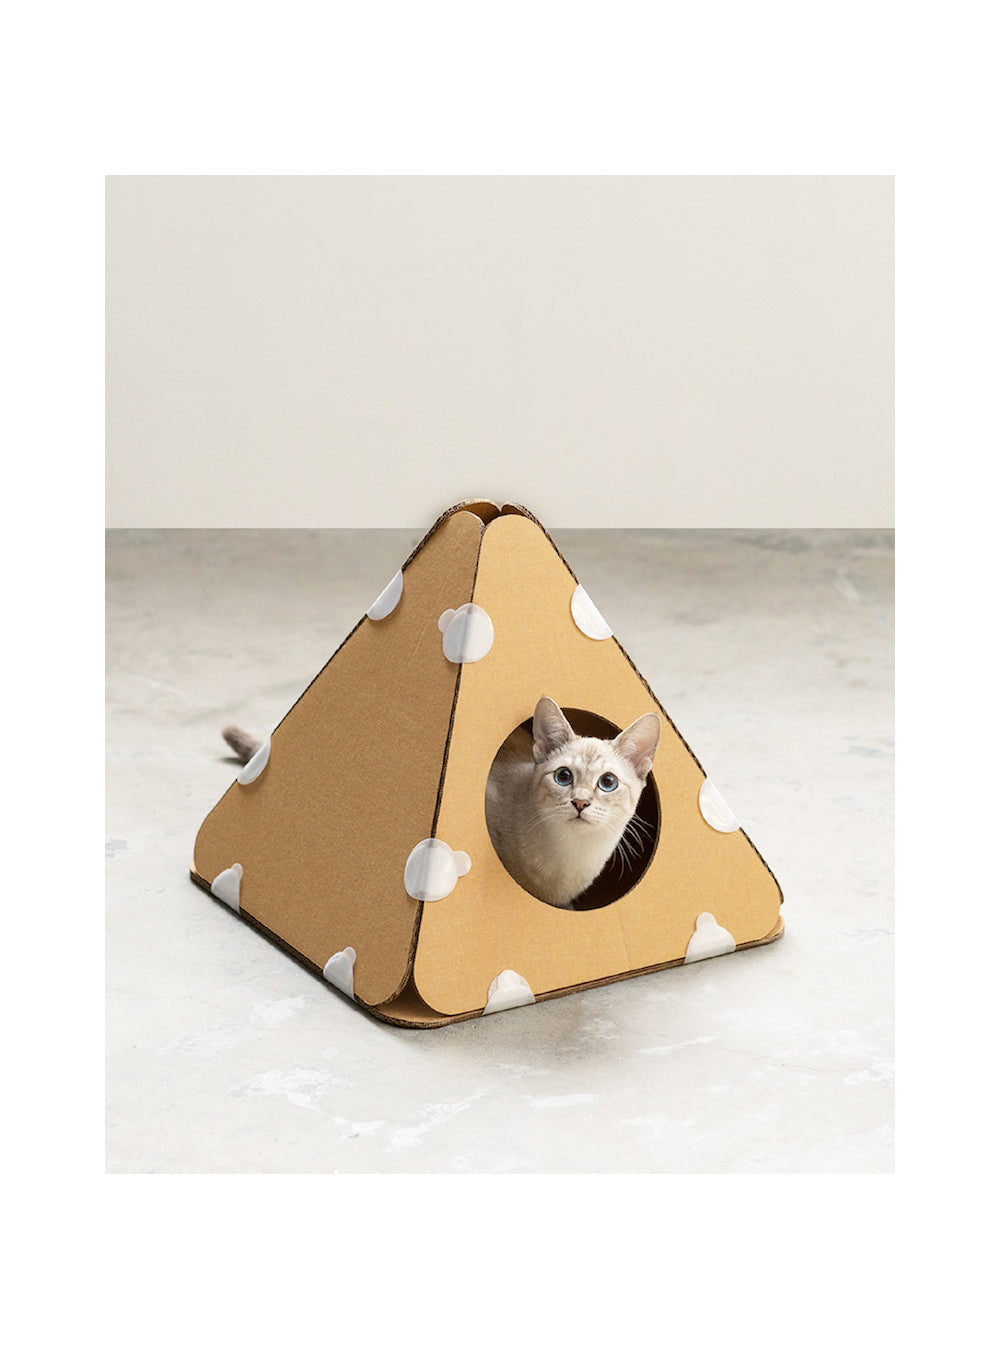 "pidan ""Boxkitty"" Modular Cat House"